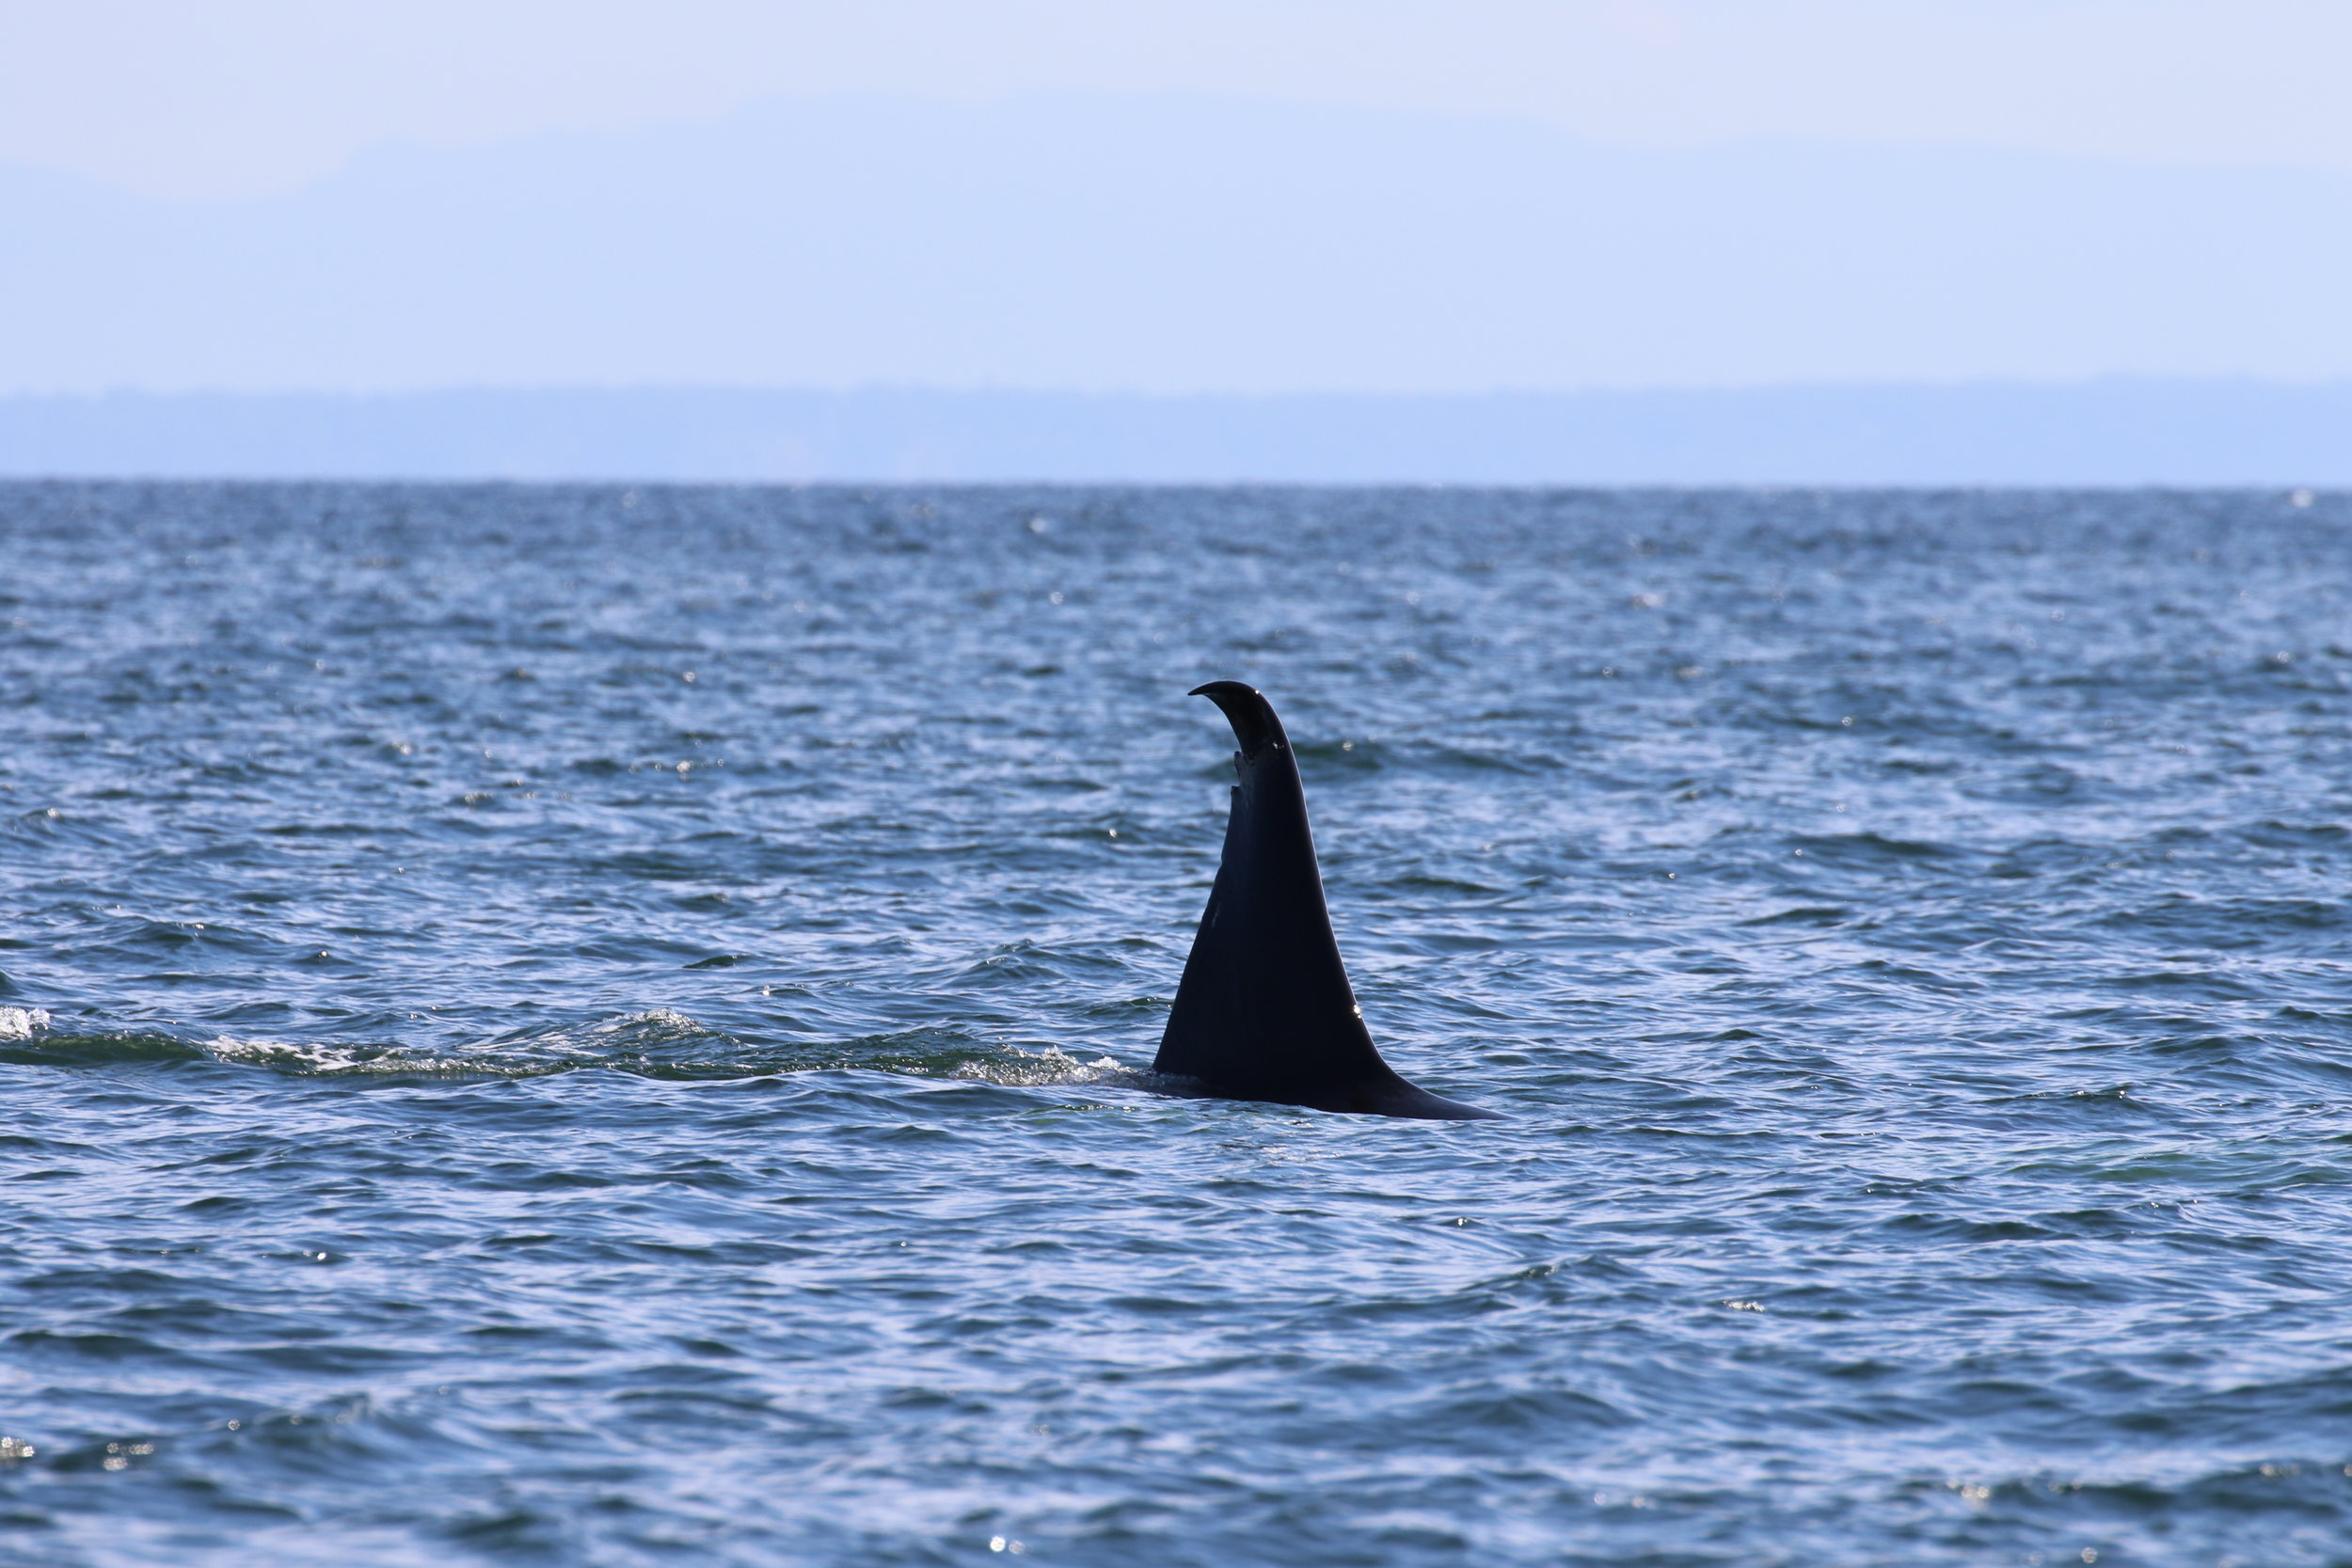 T46D with his droopy dorsal fin. Photo by Rebeka Pirker (3:30).